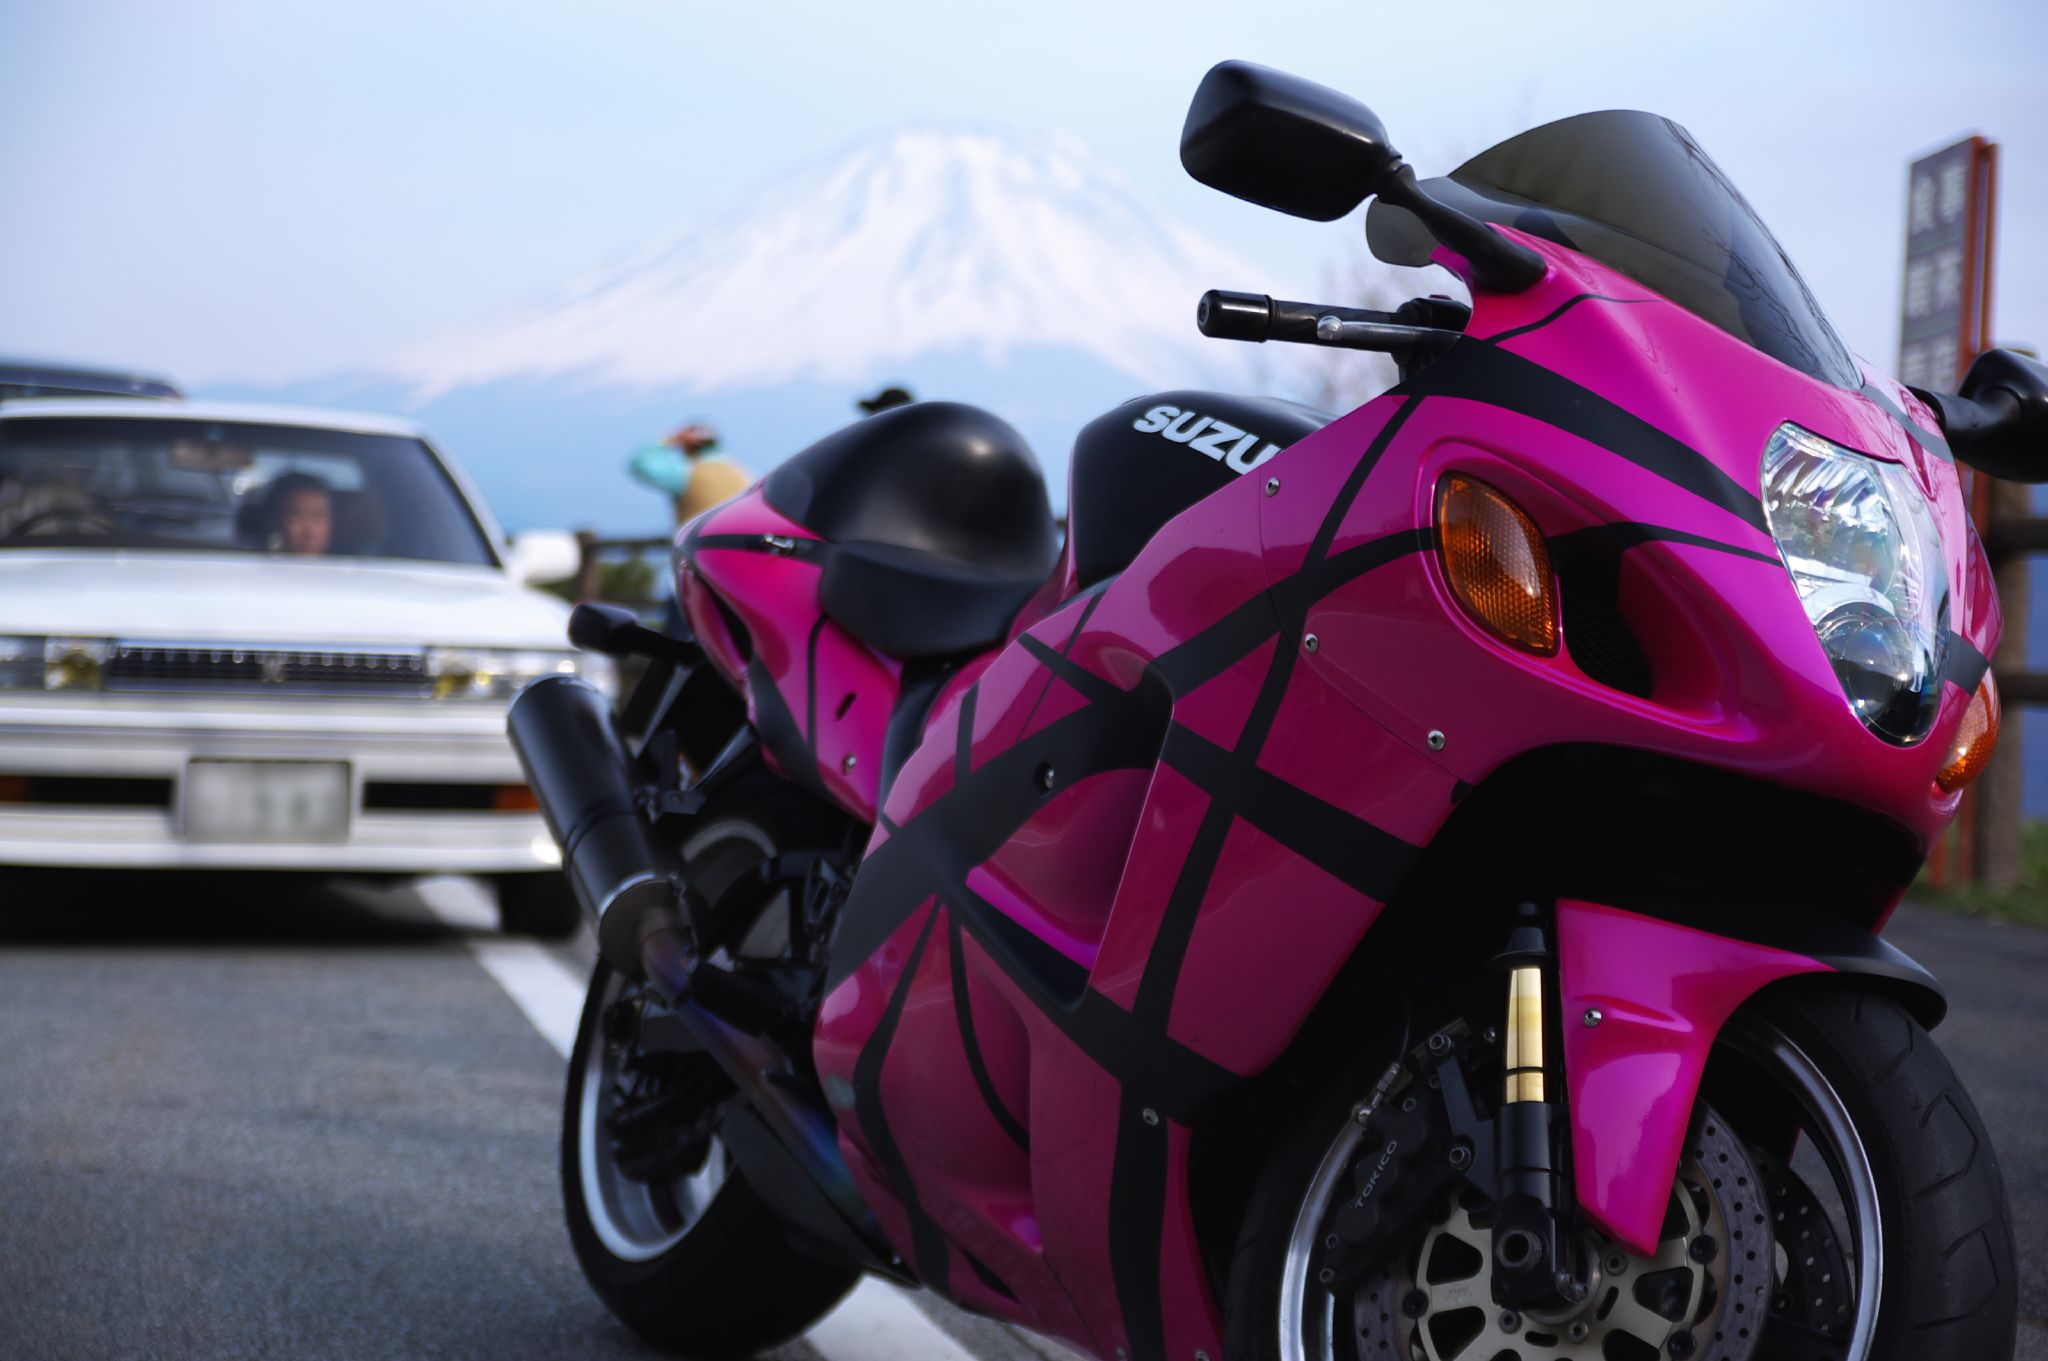 File:Hot Pink Suzuki Hayabusa In Japan